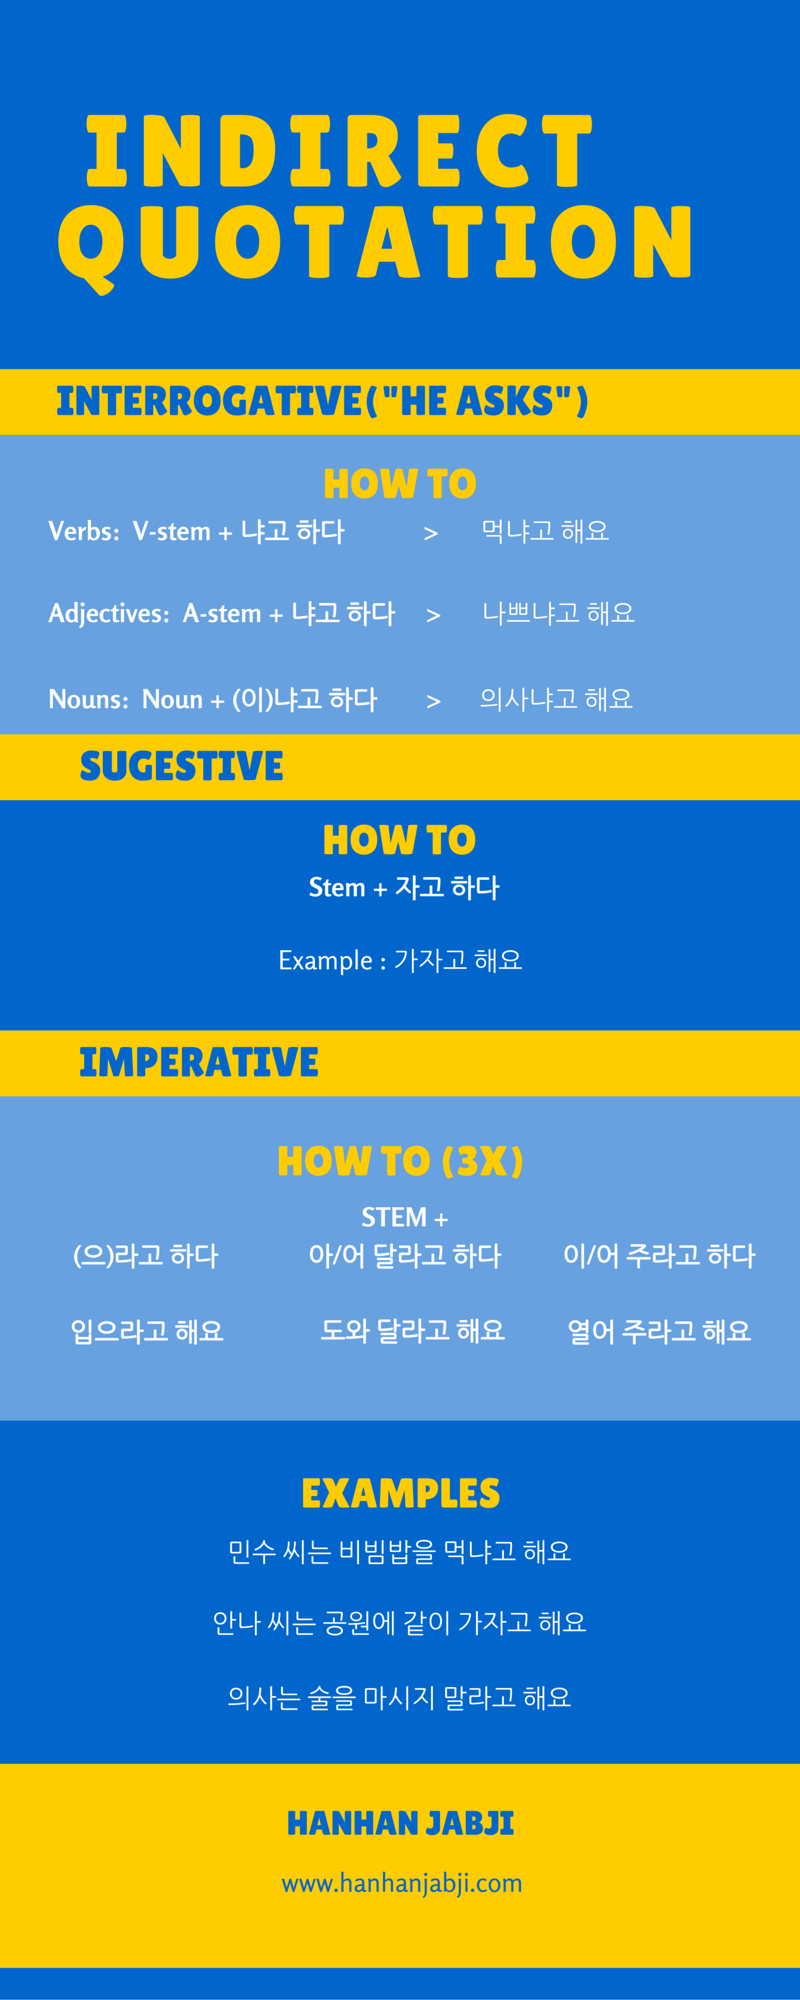 Indirect Quotation in Korean Chart